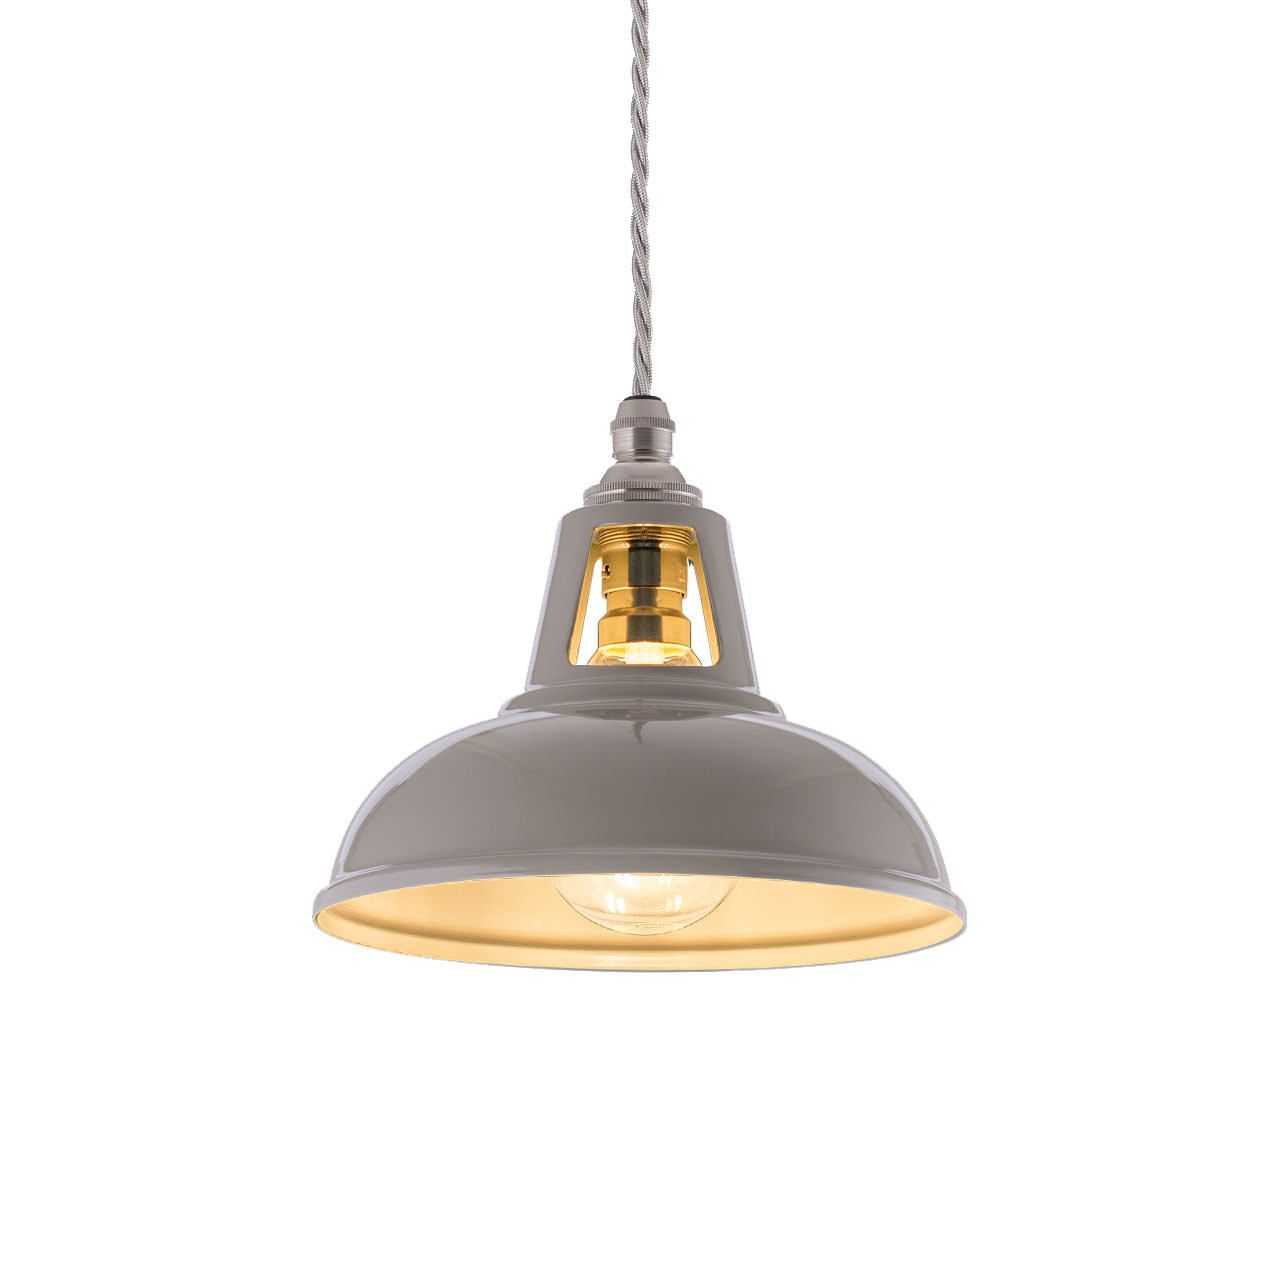 Micro Coolicon Mid Grey Industrial Pendant Lights Vintage